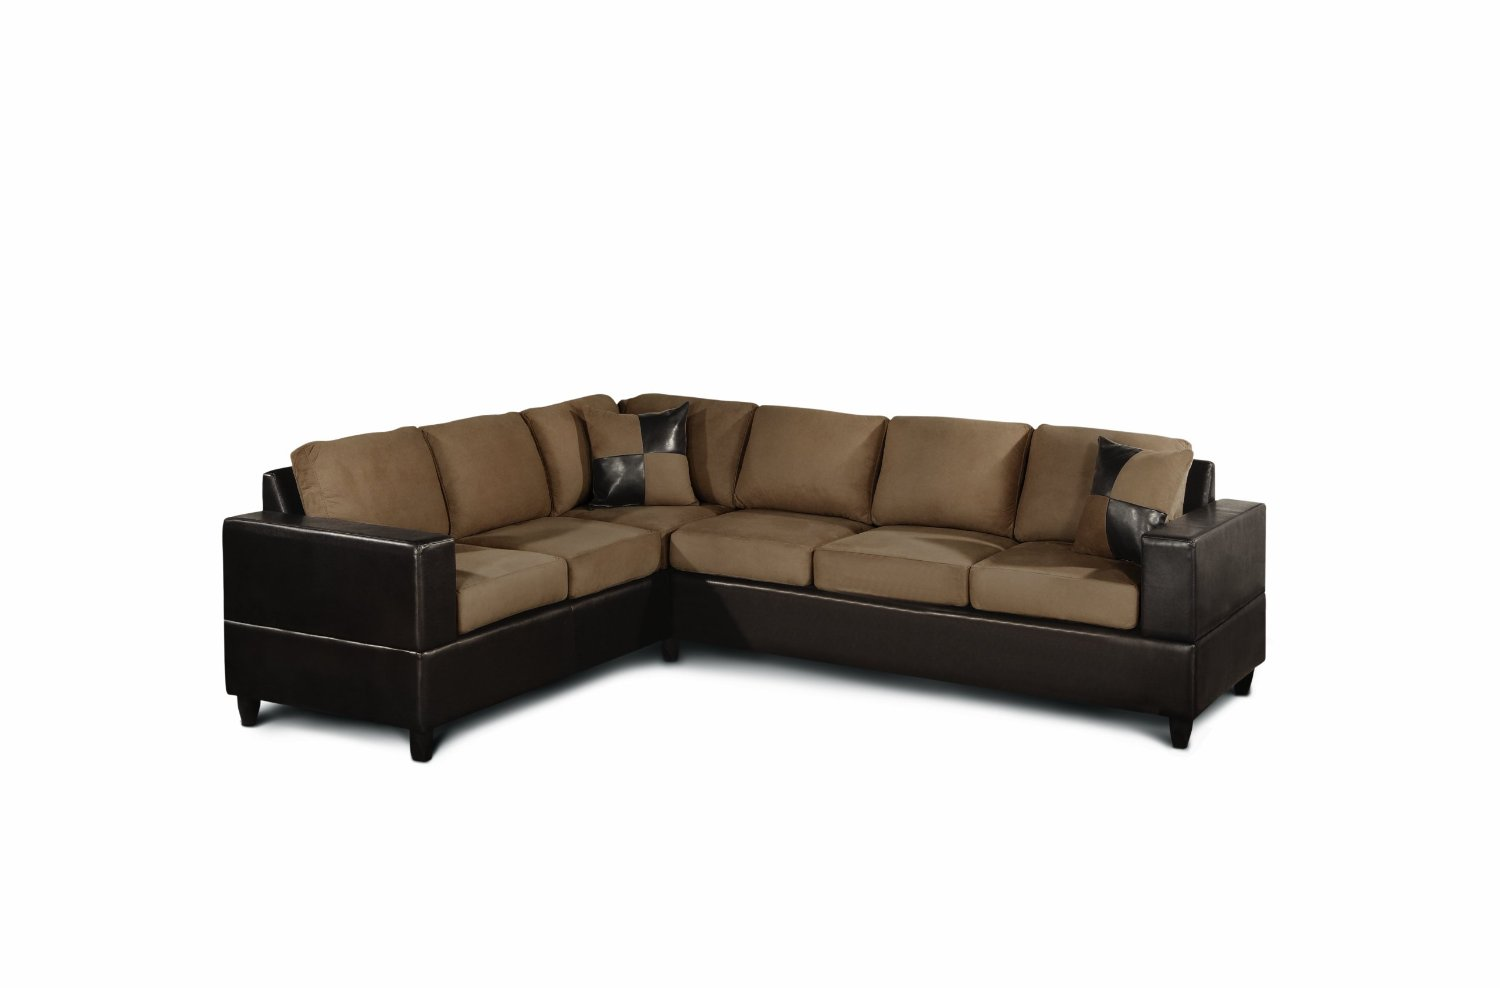 Buy Small Sofa Online: Small L Shaped Sofa